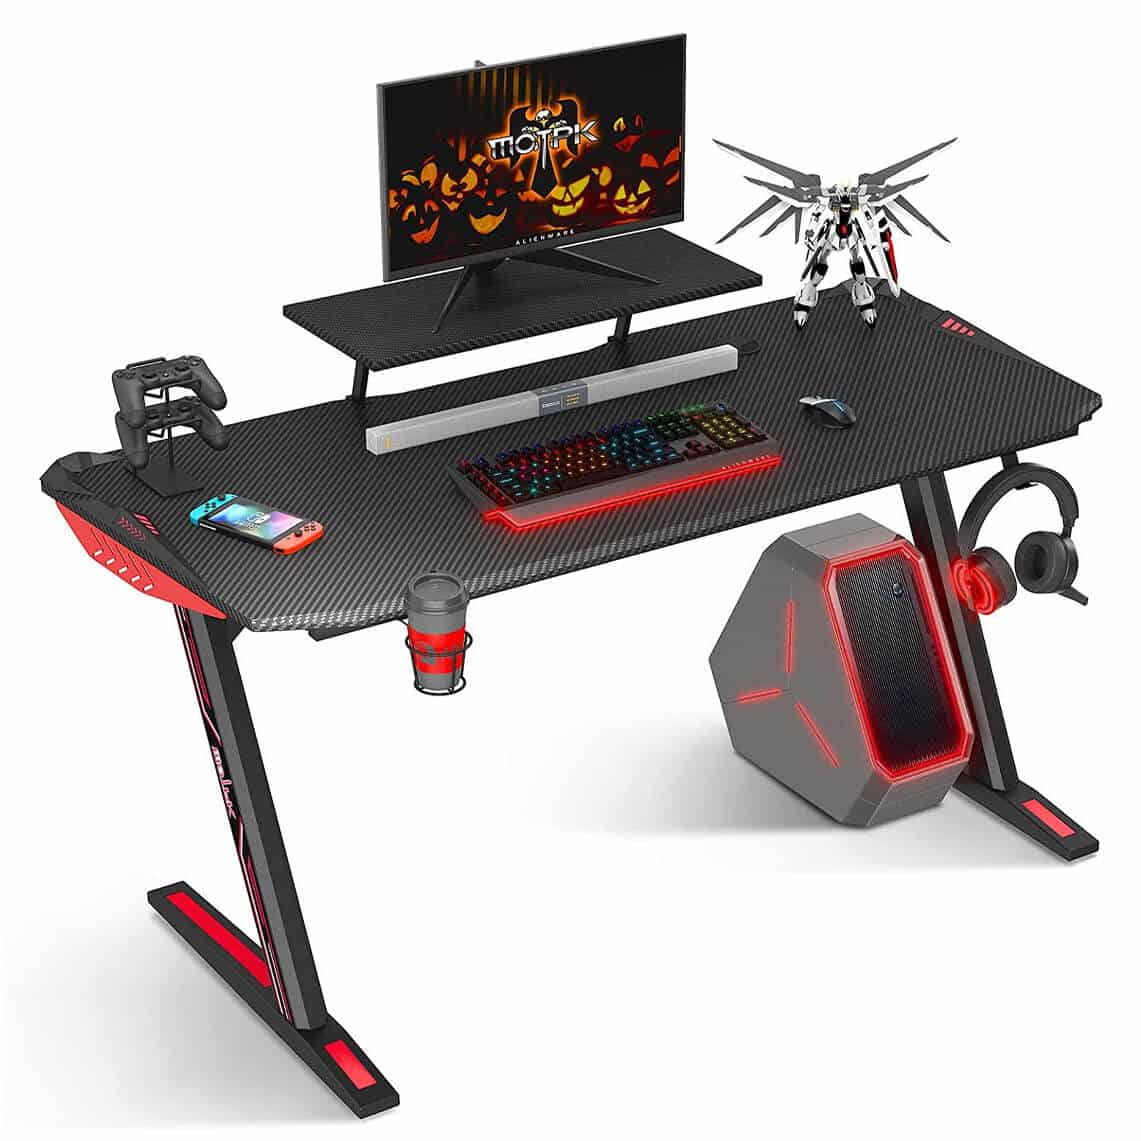 MOTPK Gaming Desk